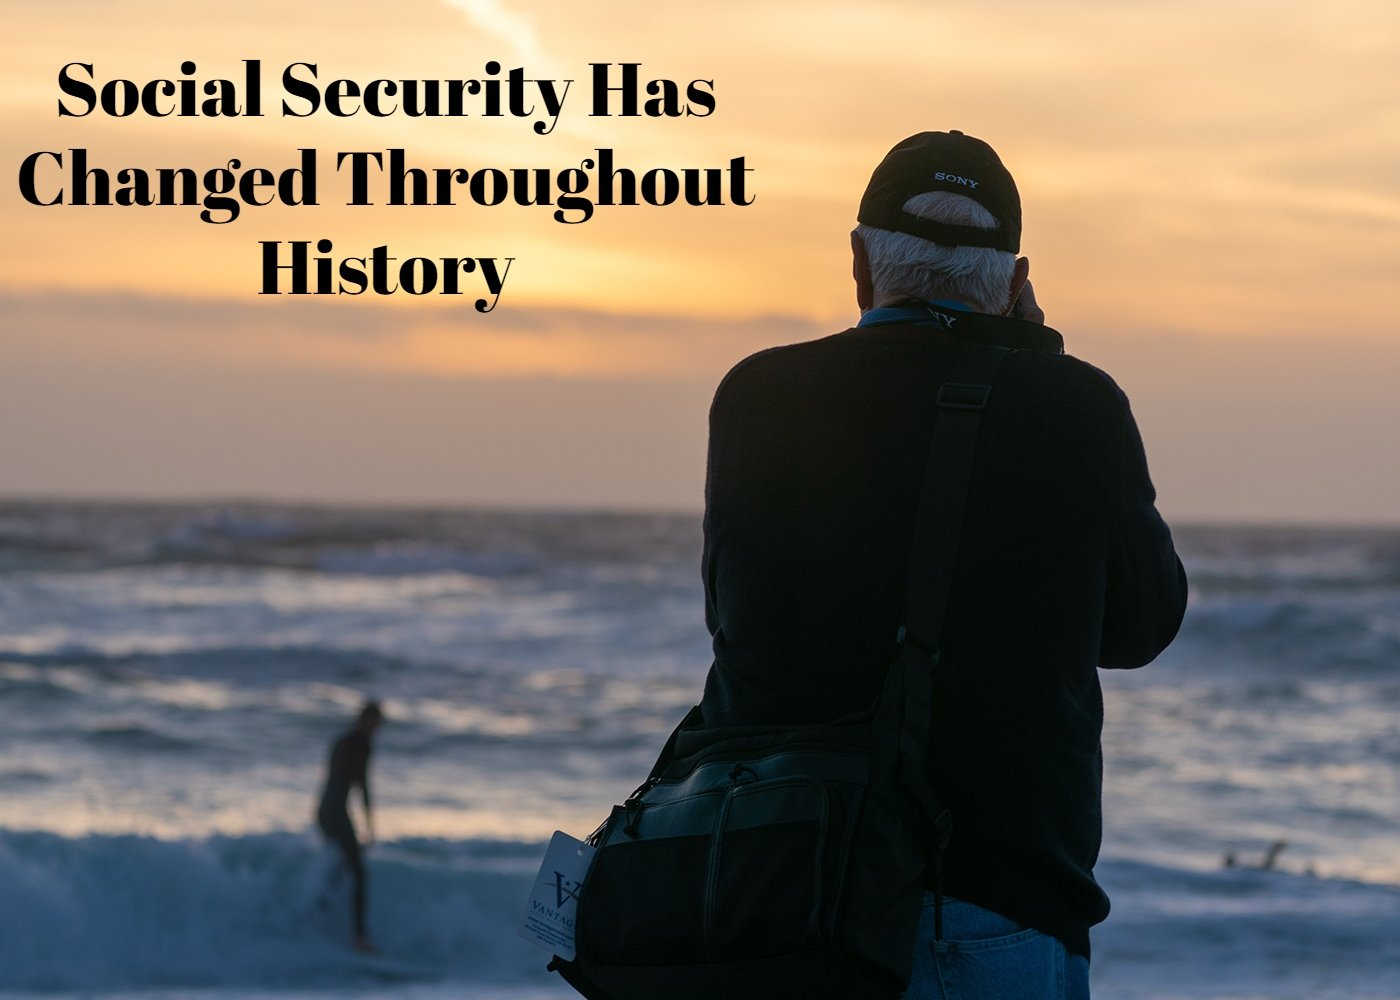 Social Security Has Changed Throughout History